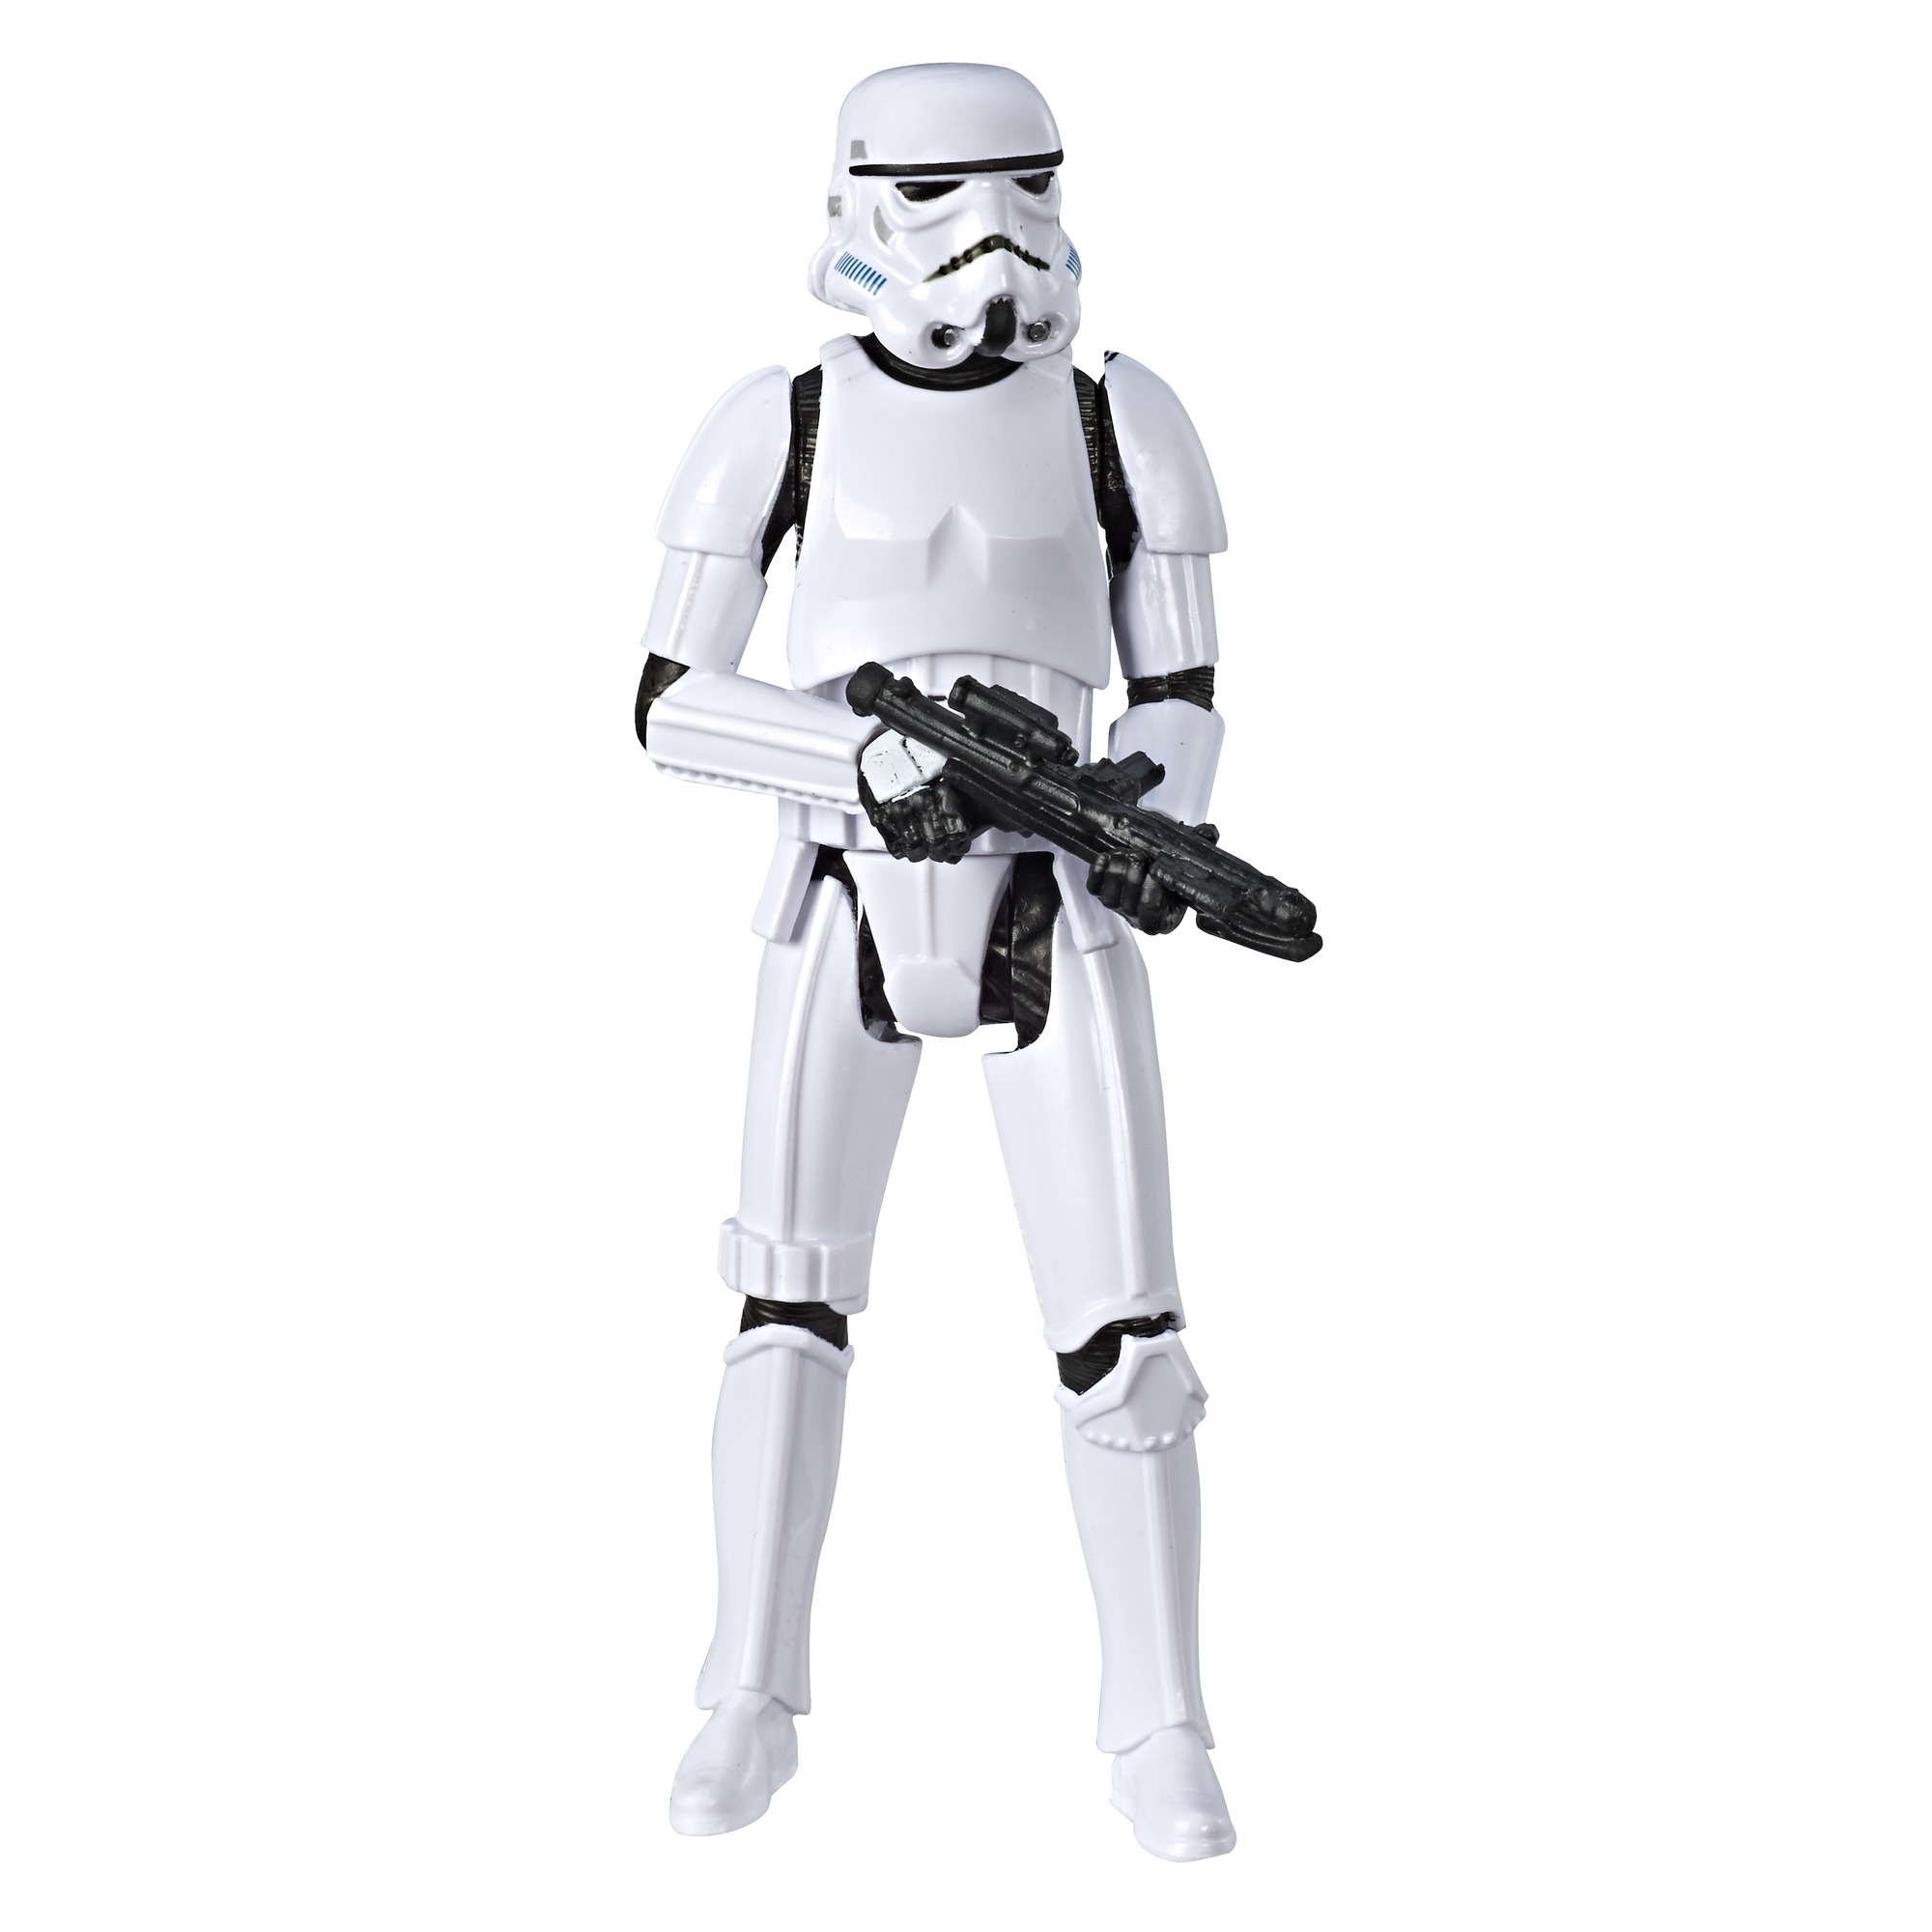 SW GOA Imperial Stormtrooper Figure and Mini Comic Set 3